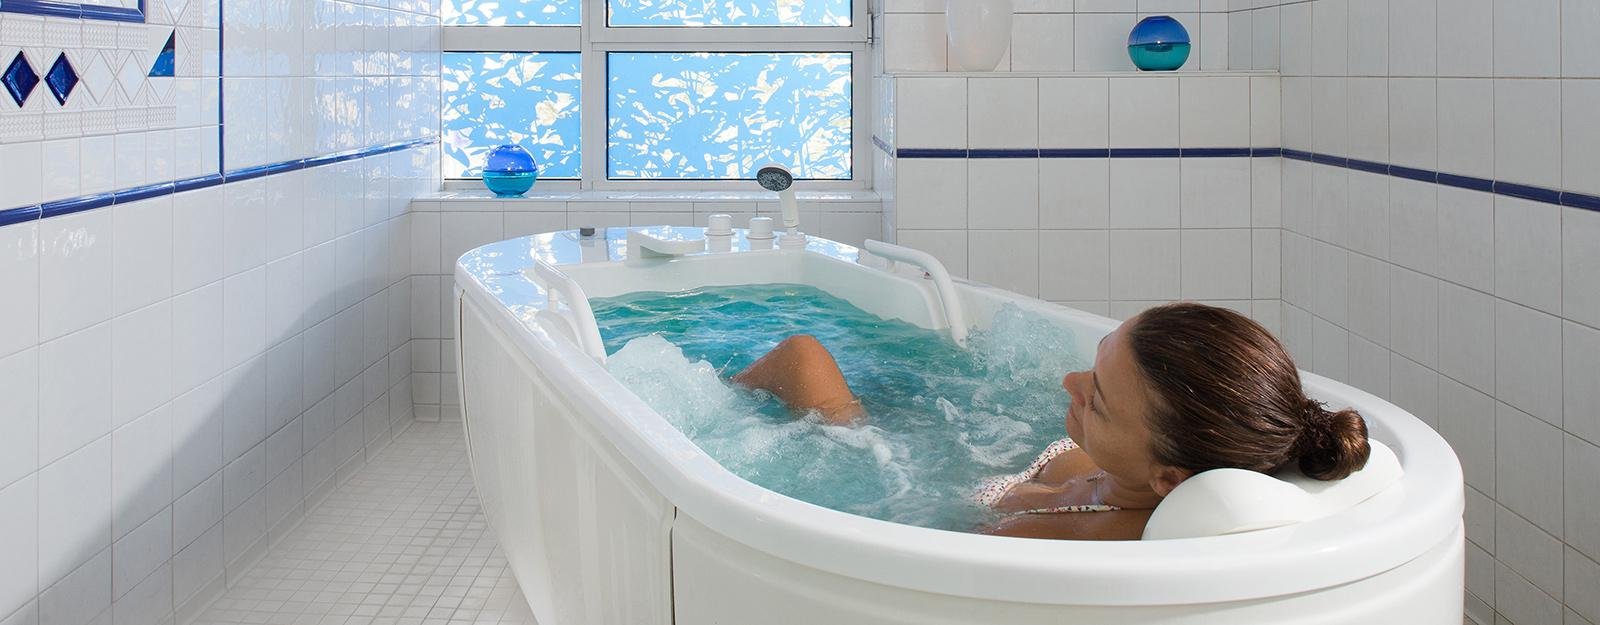 vichy-spa-relaxation-soin-thermal